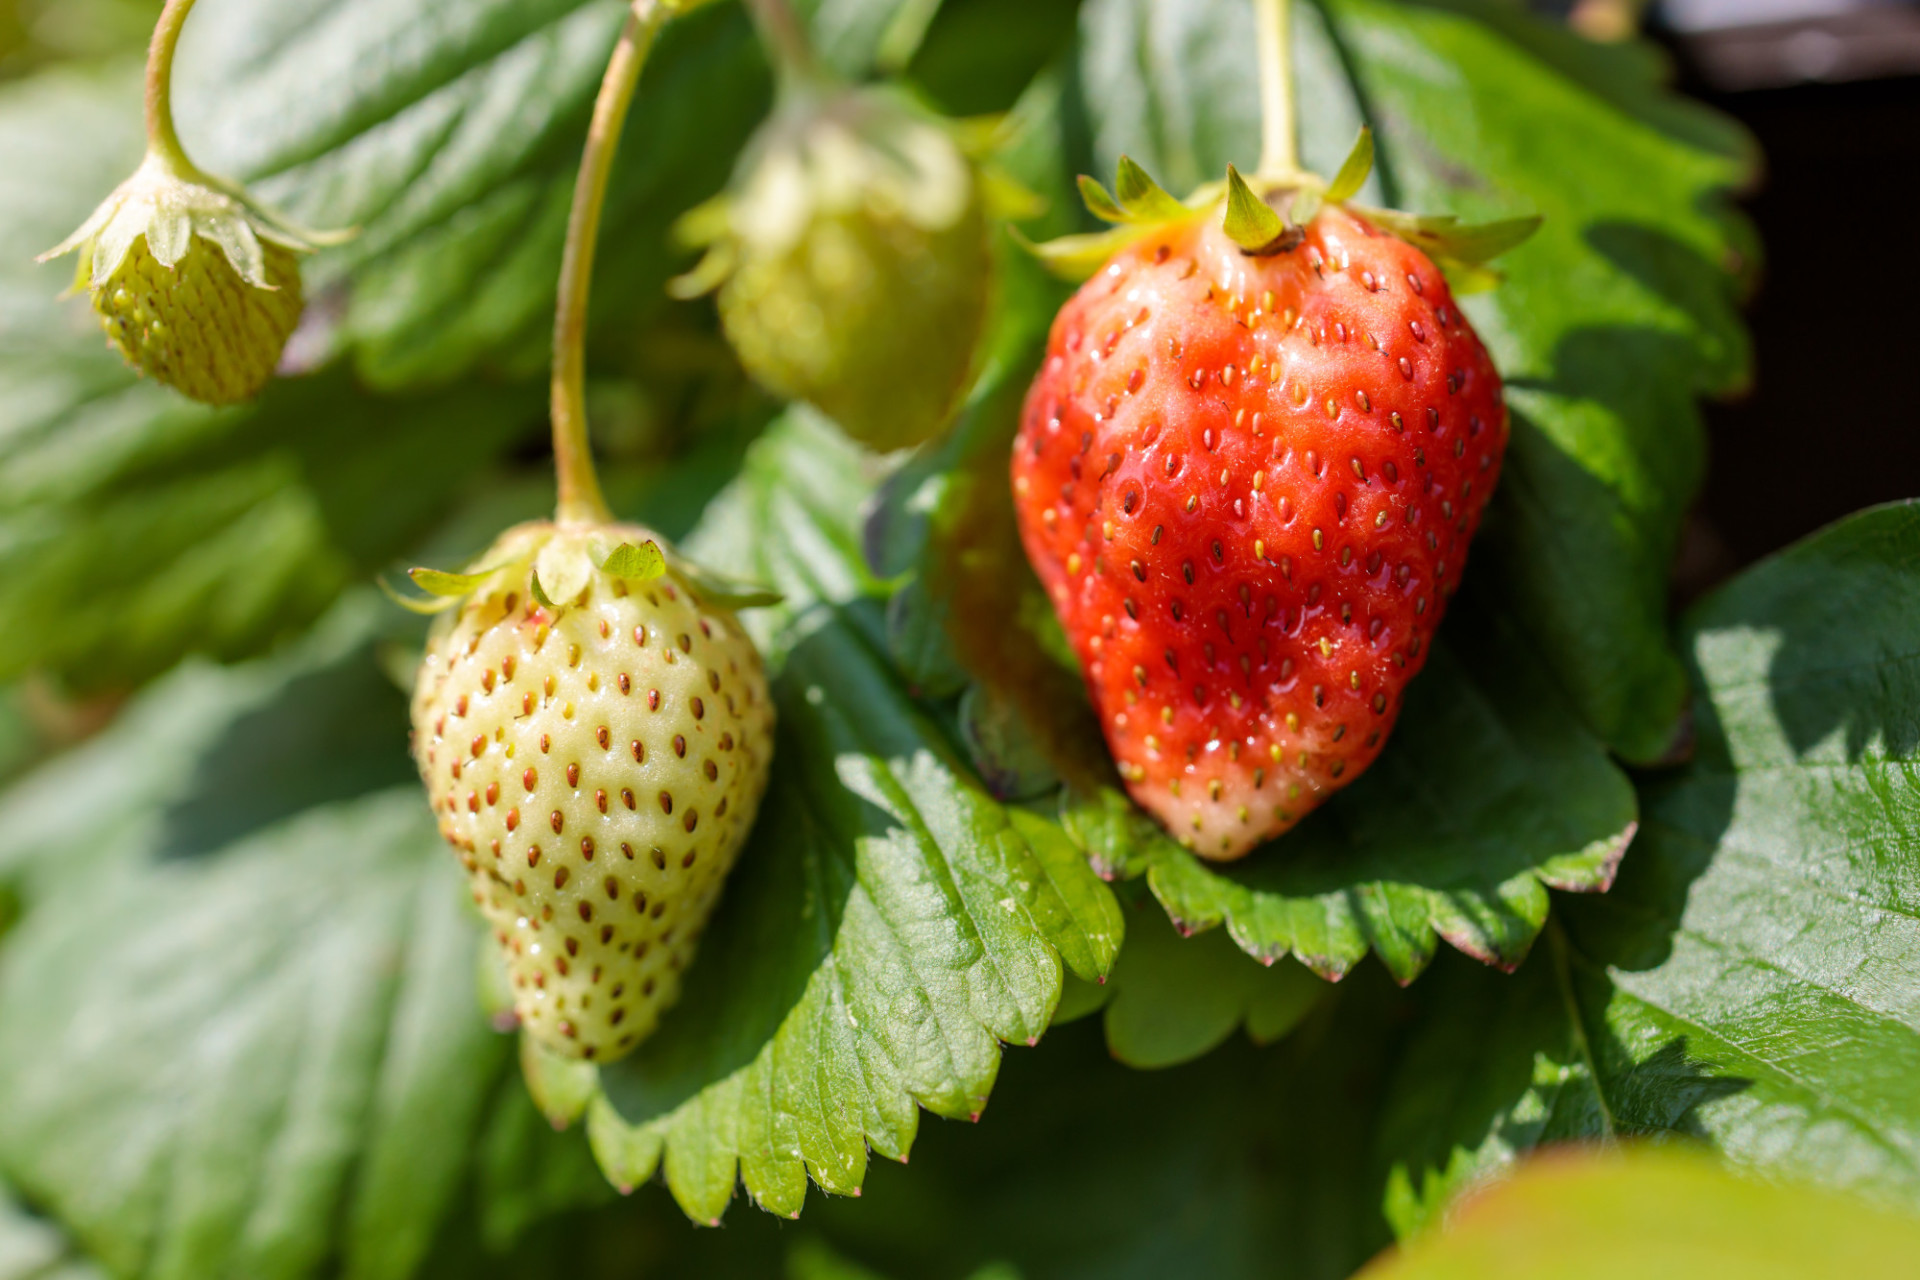 Green and red ripe strawberries